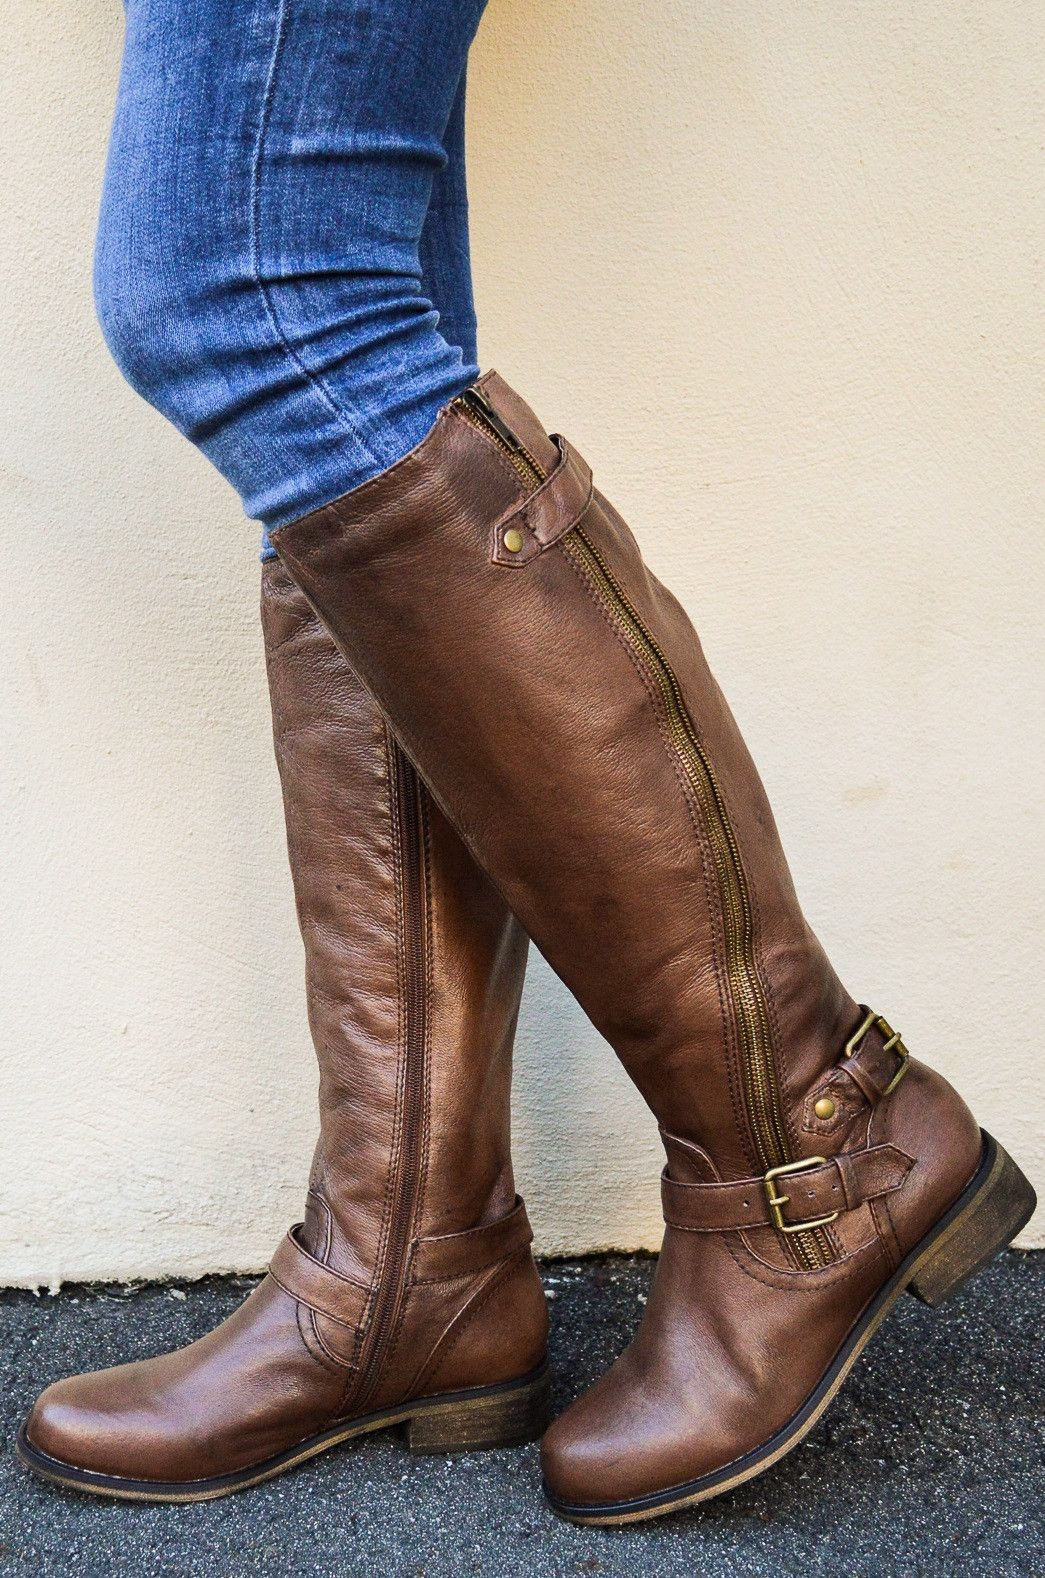 Product Details. This season, saddle up with sophisticated style and the new Karmin Riding Boot from Madden Girl! Rocking a tall riding boot silhouette, the Karmin Boot features synthetic leather uppers with a wraparound harness strap, decorative back zipper with open gore and buckle strap, and medial side zipper for easy slip-on and off.